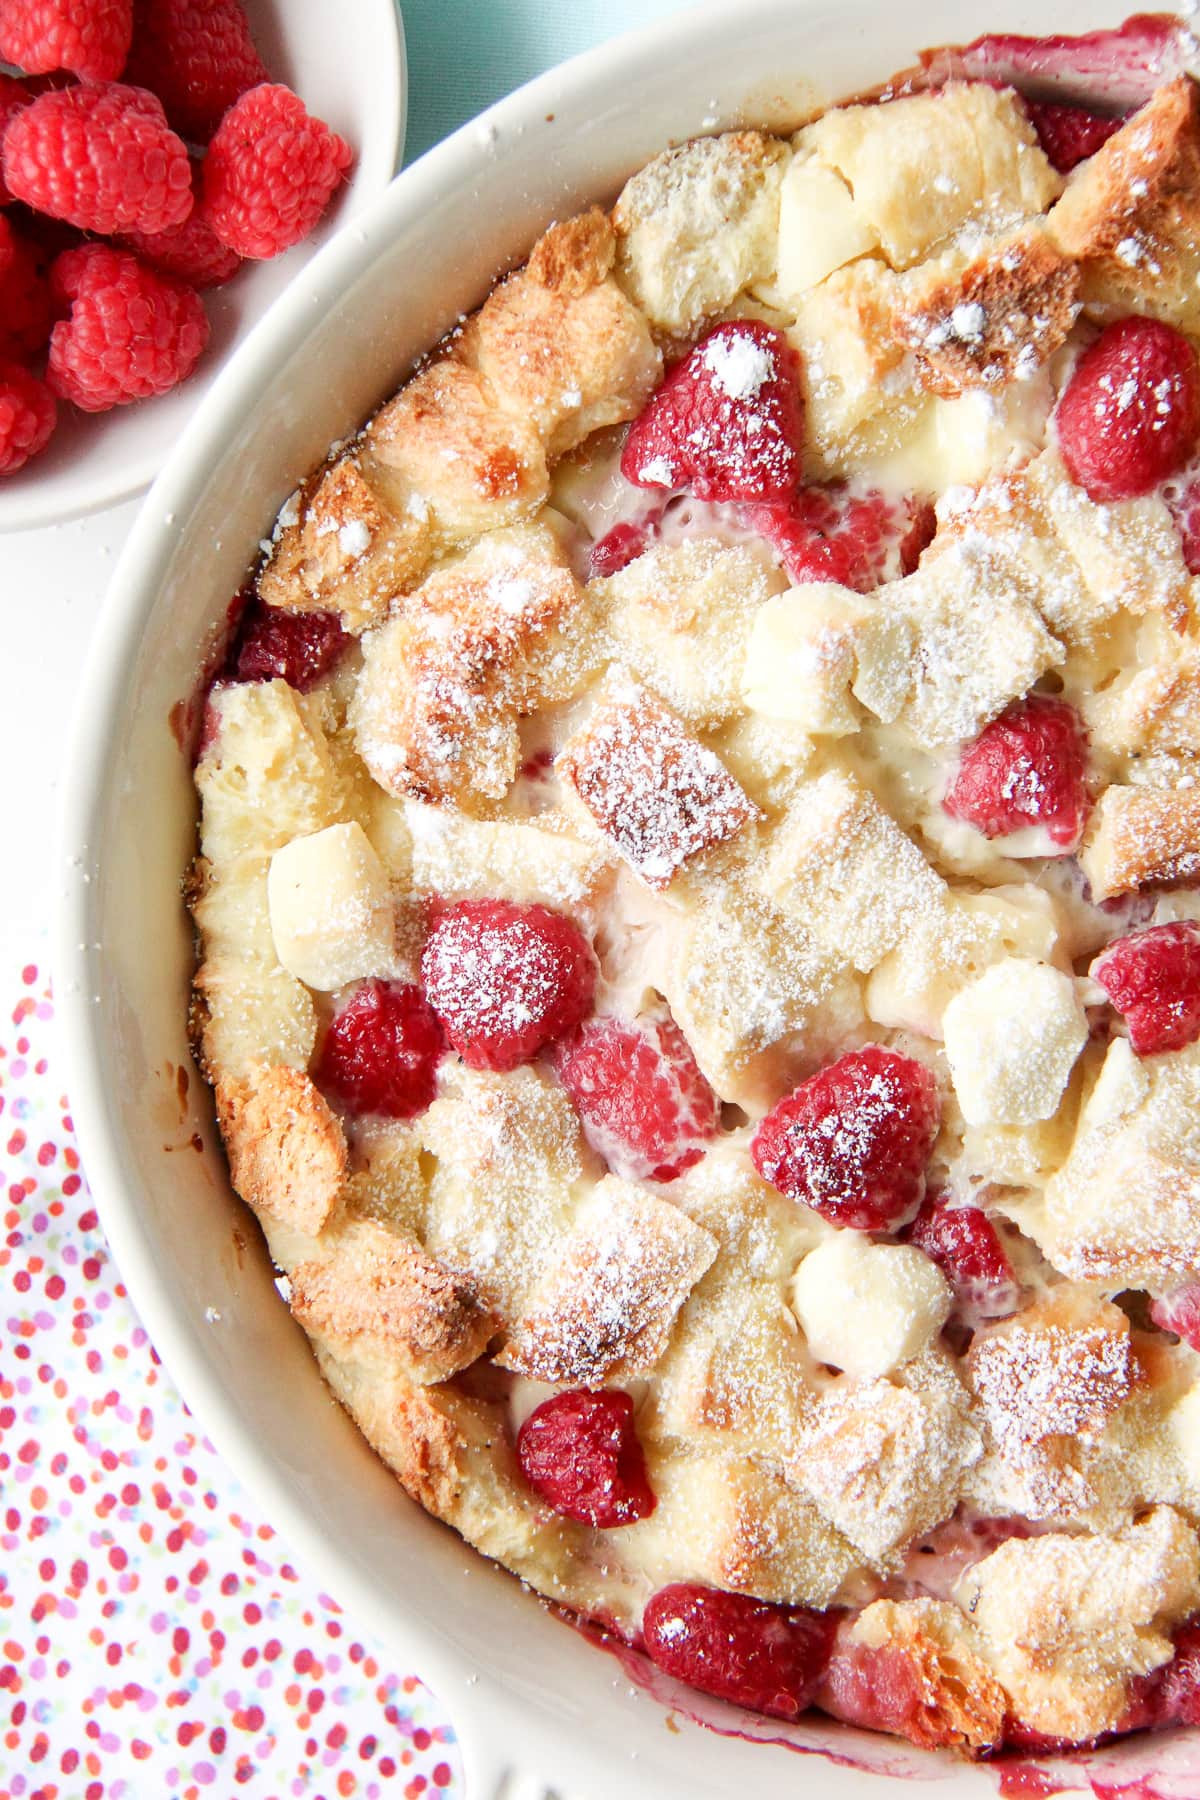 Raspberry Baked French Toast or Bread Pudding